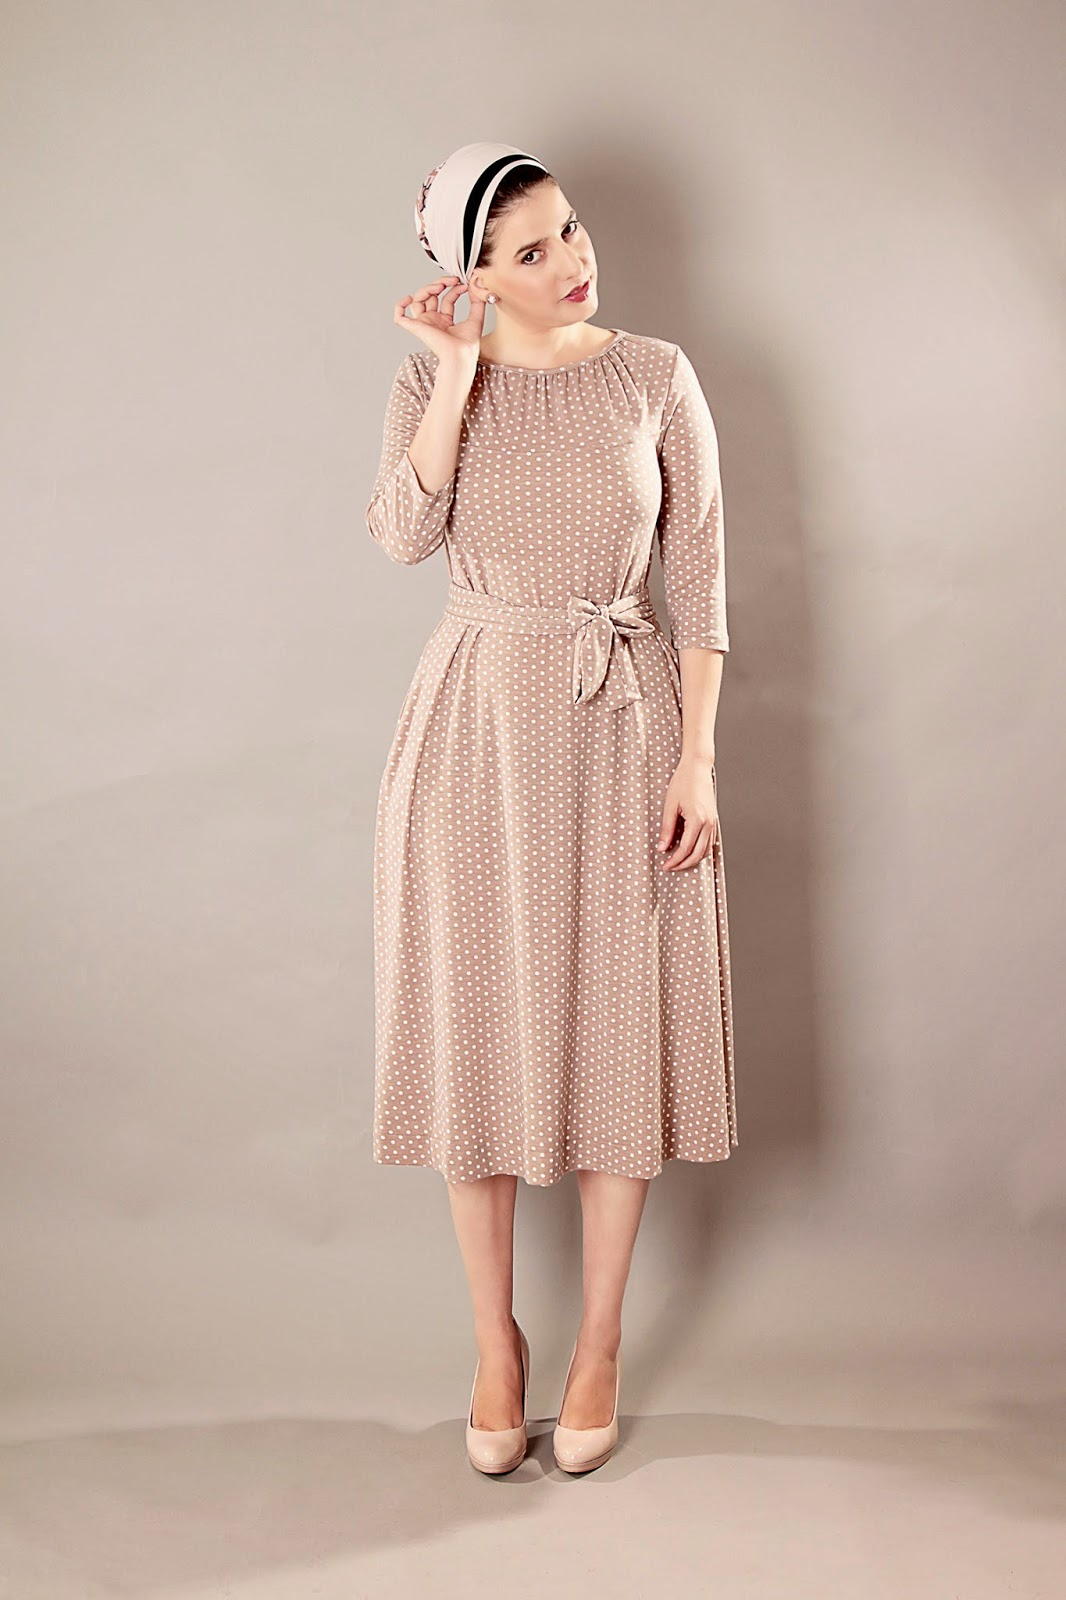 c2e50e883631 Bianca dress - Classic modest dress, with matching belt.Perfect for any  occasion formal or casual.Super comfortable to wear for long hours.